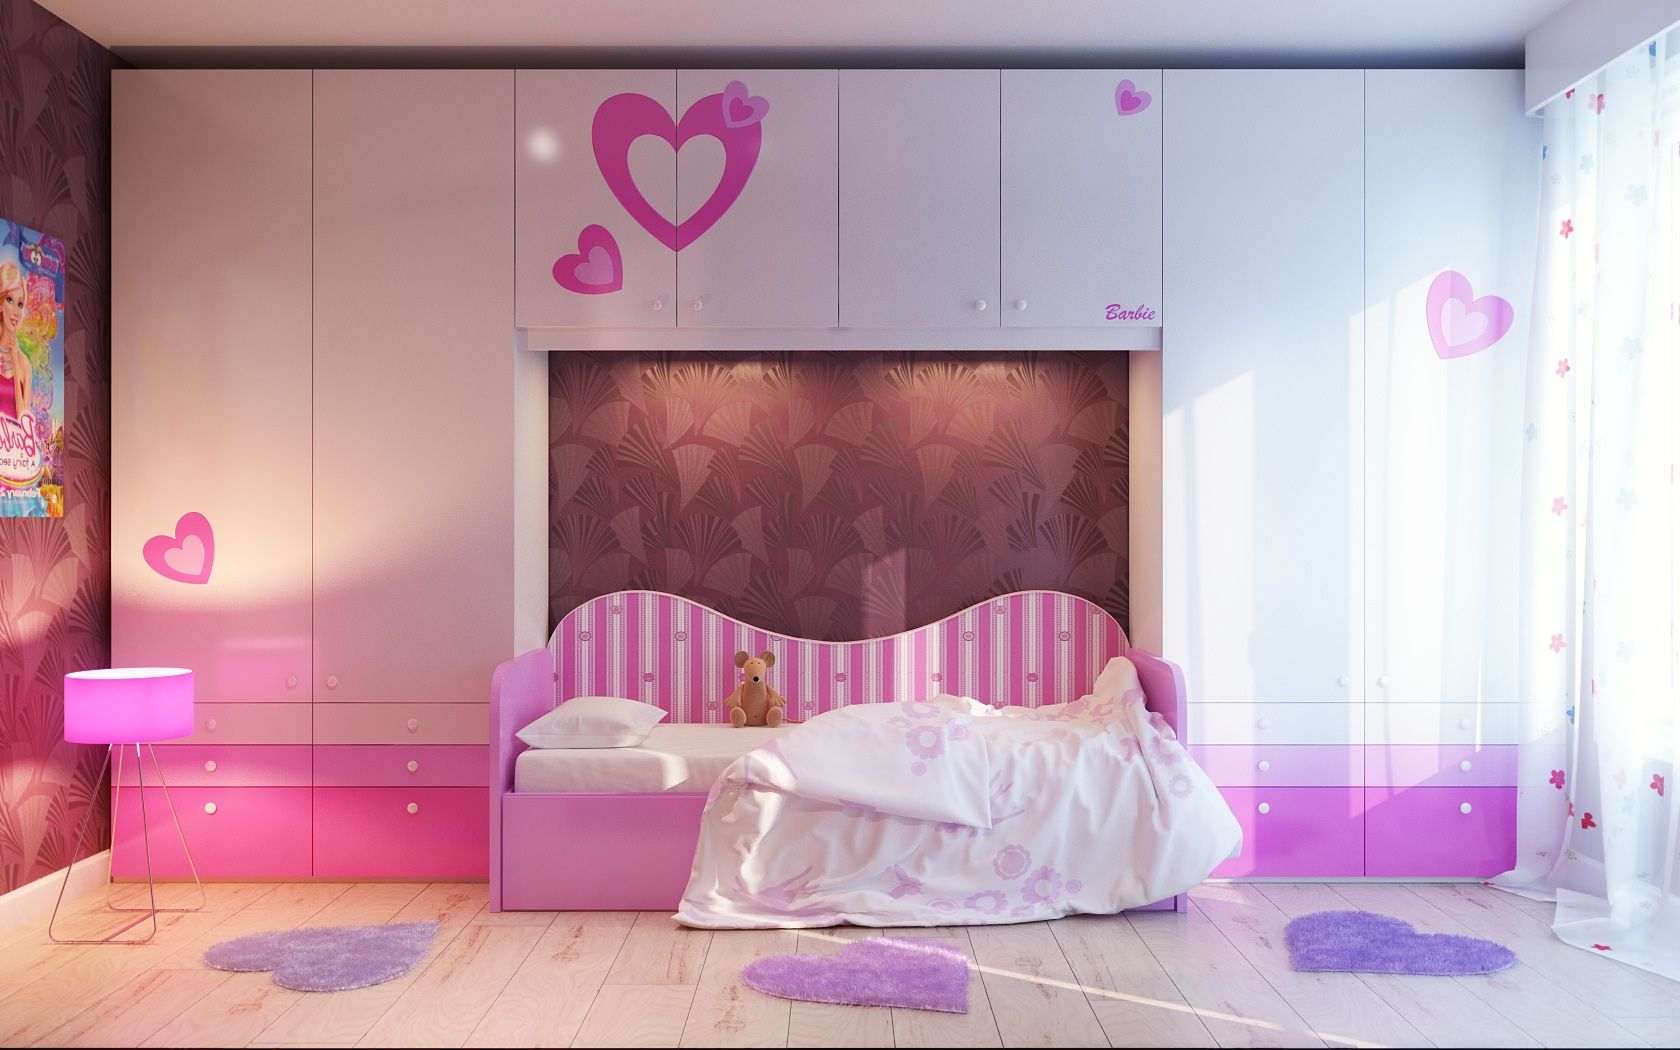 girls room designs with creative ideas and soft color decor bring it out own beauty - Decoration For Girl Bedroom